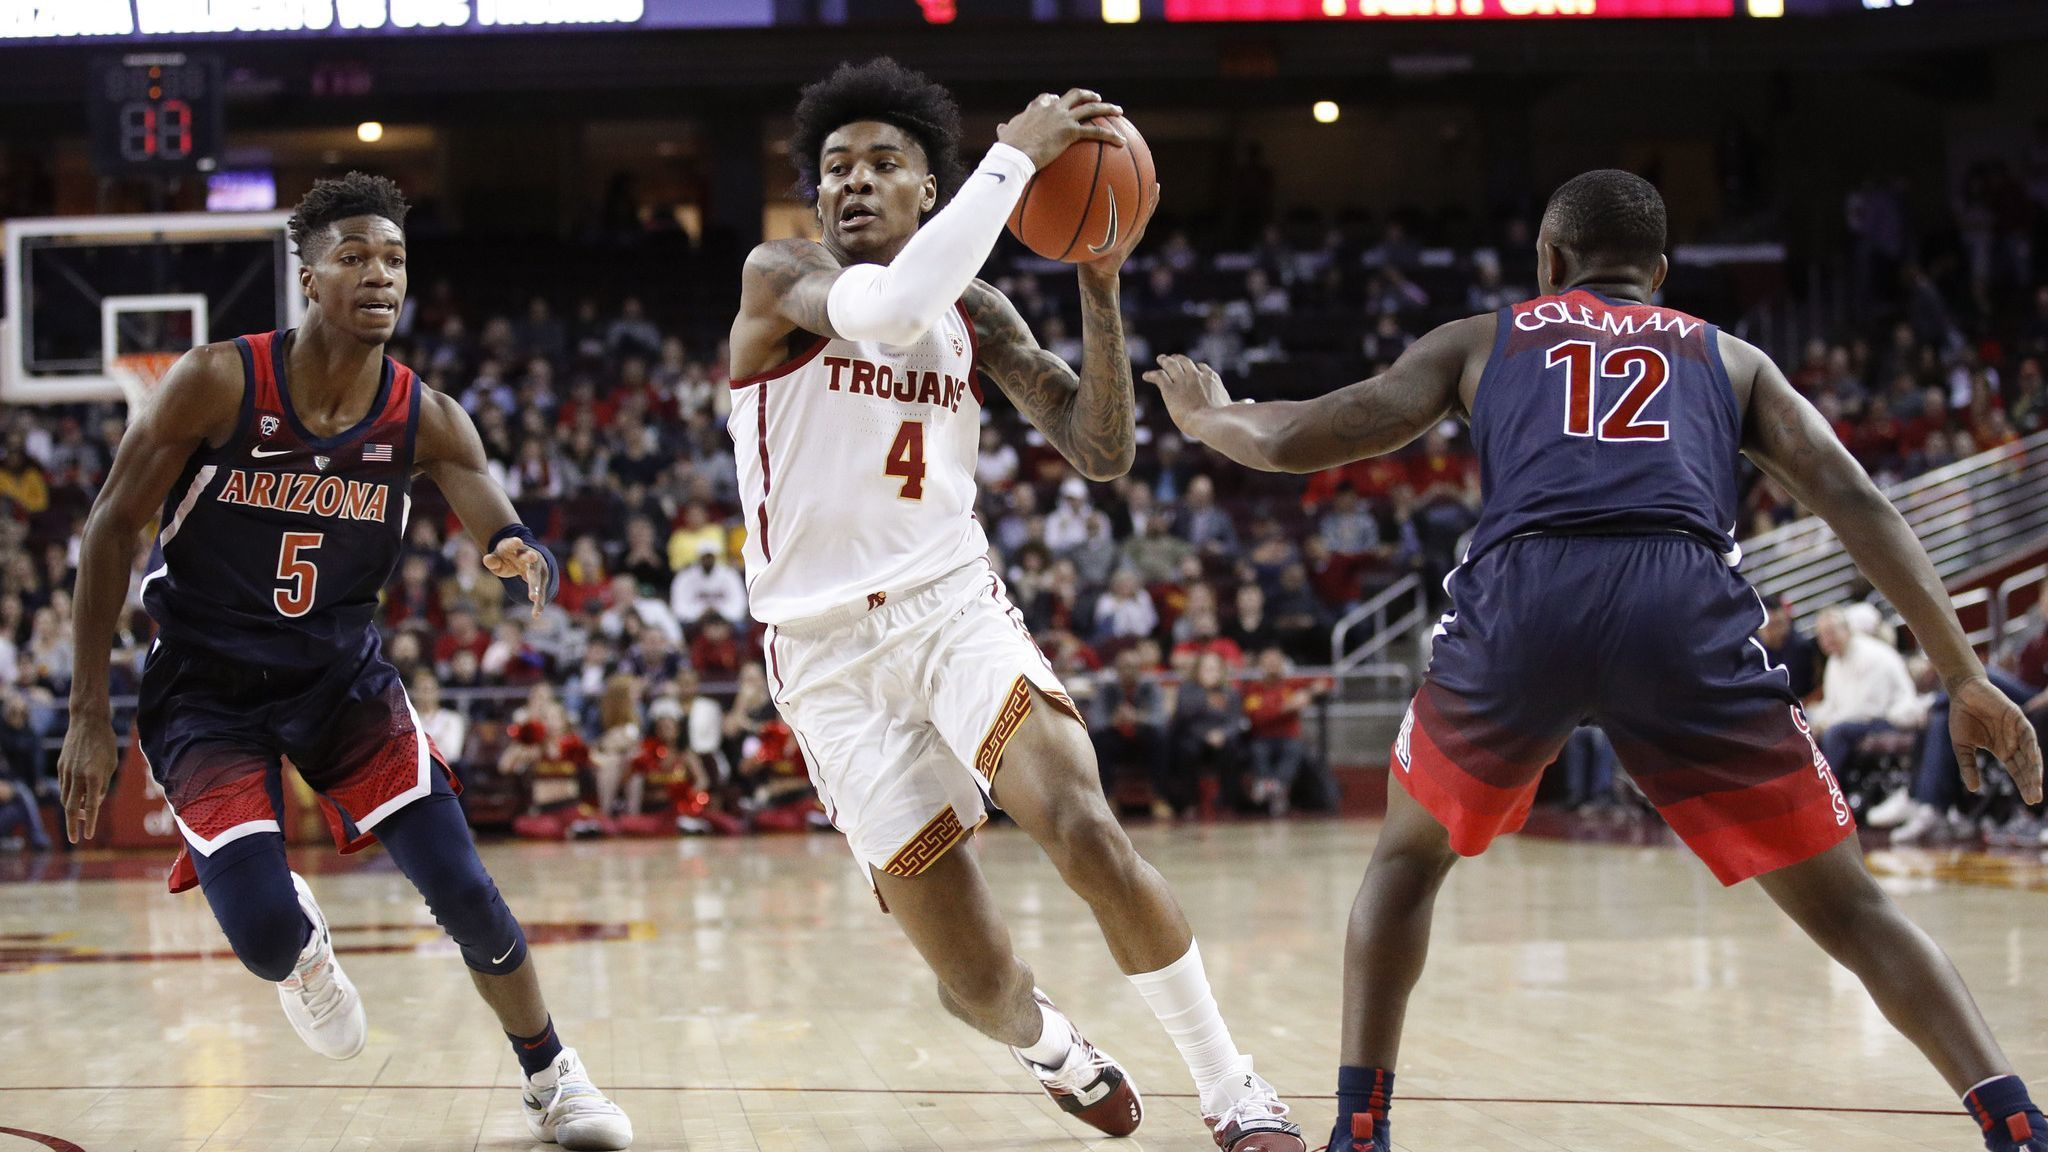 Kevin Porter Jr. shows off his skills as USC romps Arizona